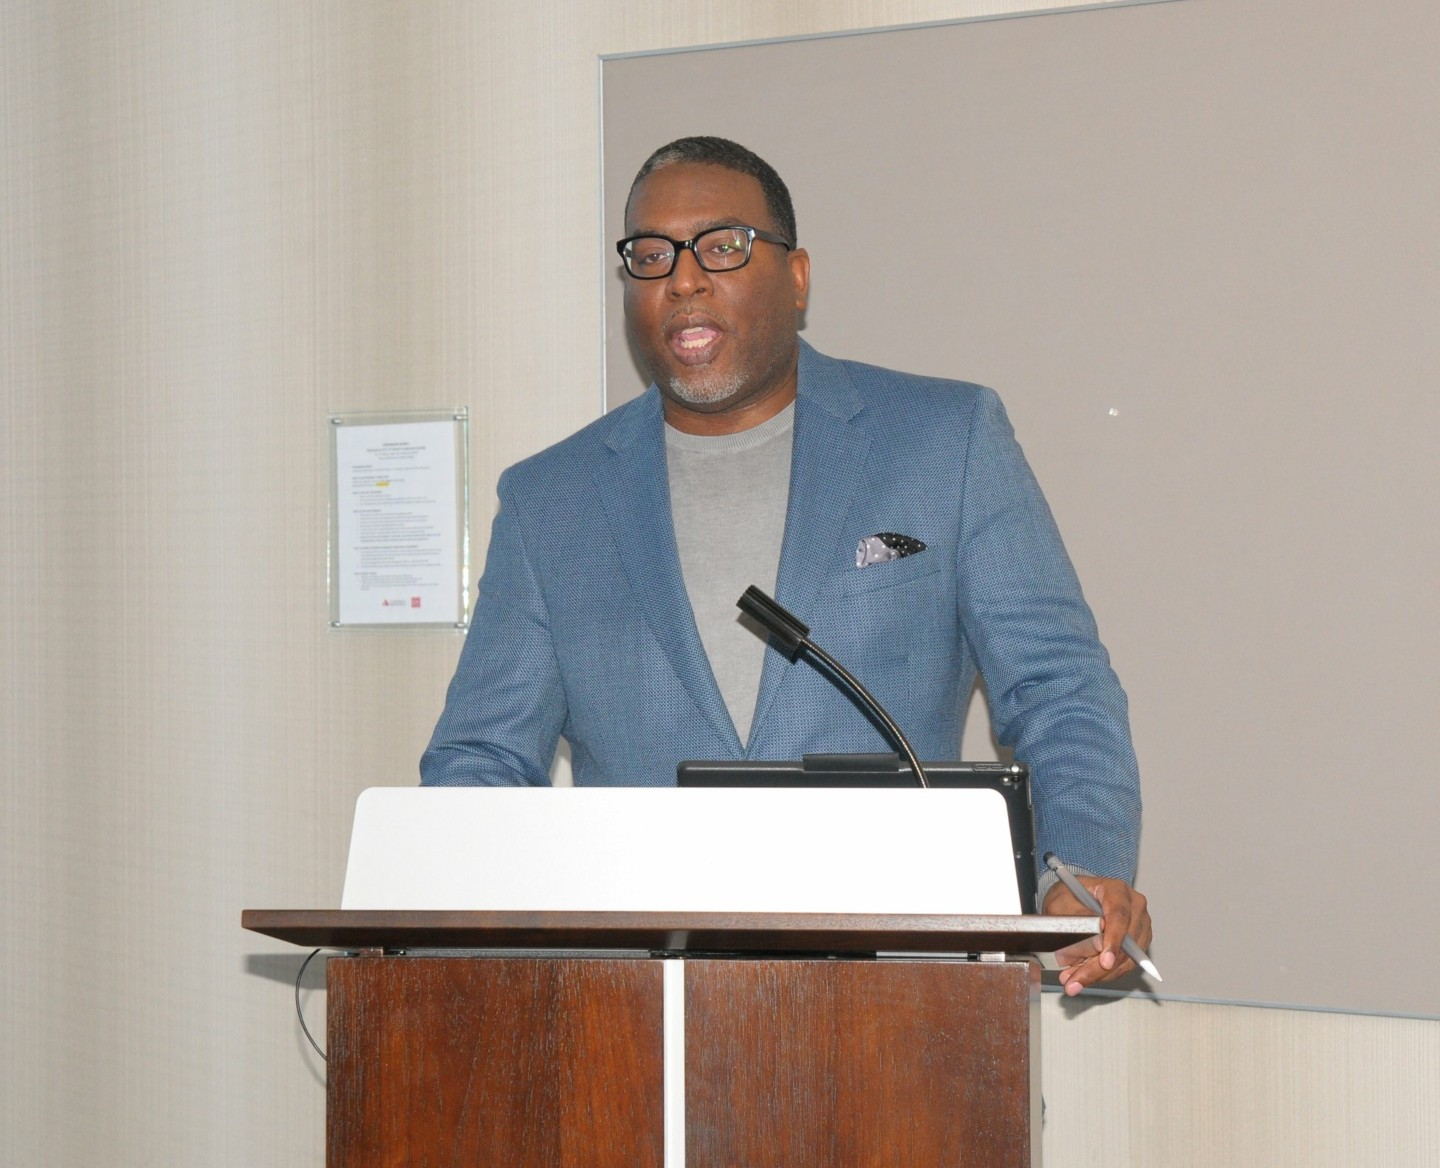 Miguel Moderators Goverment Contracting Conversation for the Atlanta Black Chambers